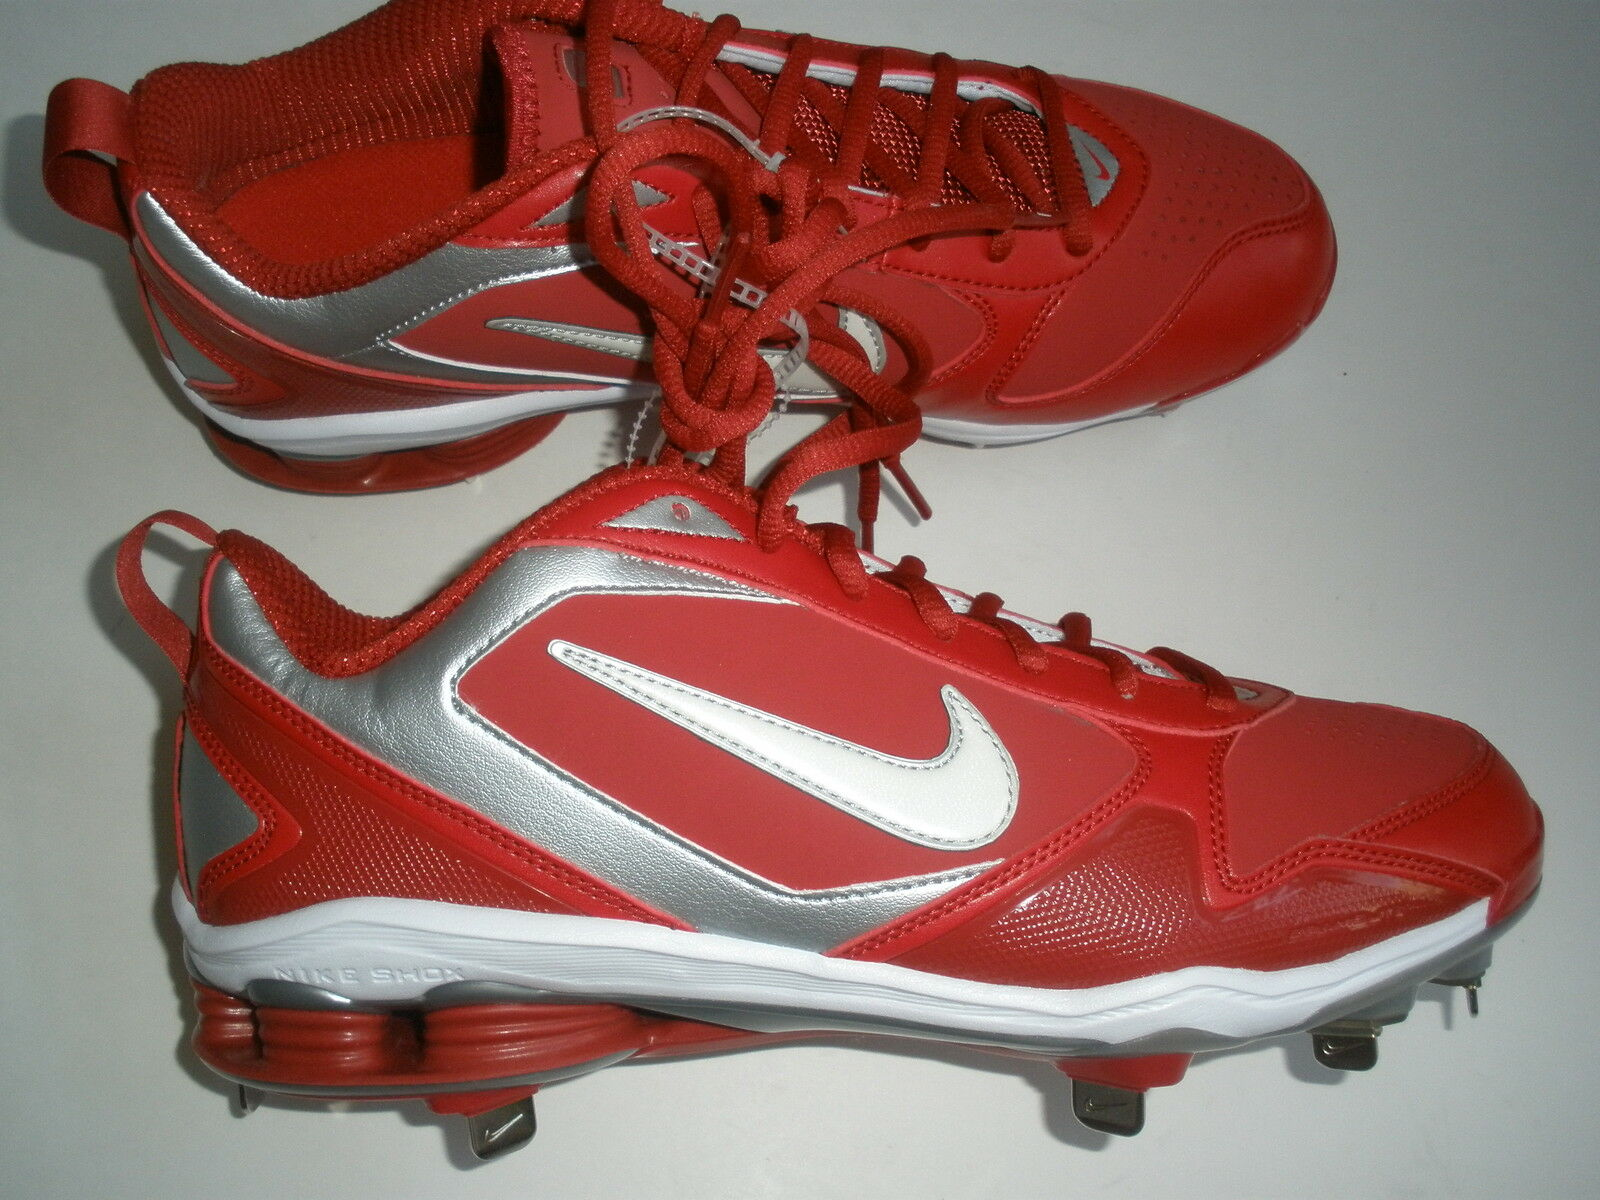 Nike SHOX ZOOM METAL Cleats  US 14